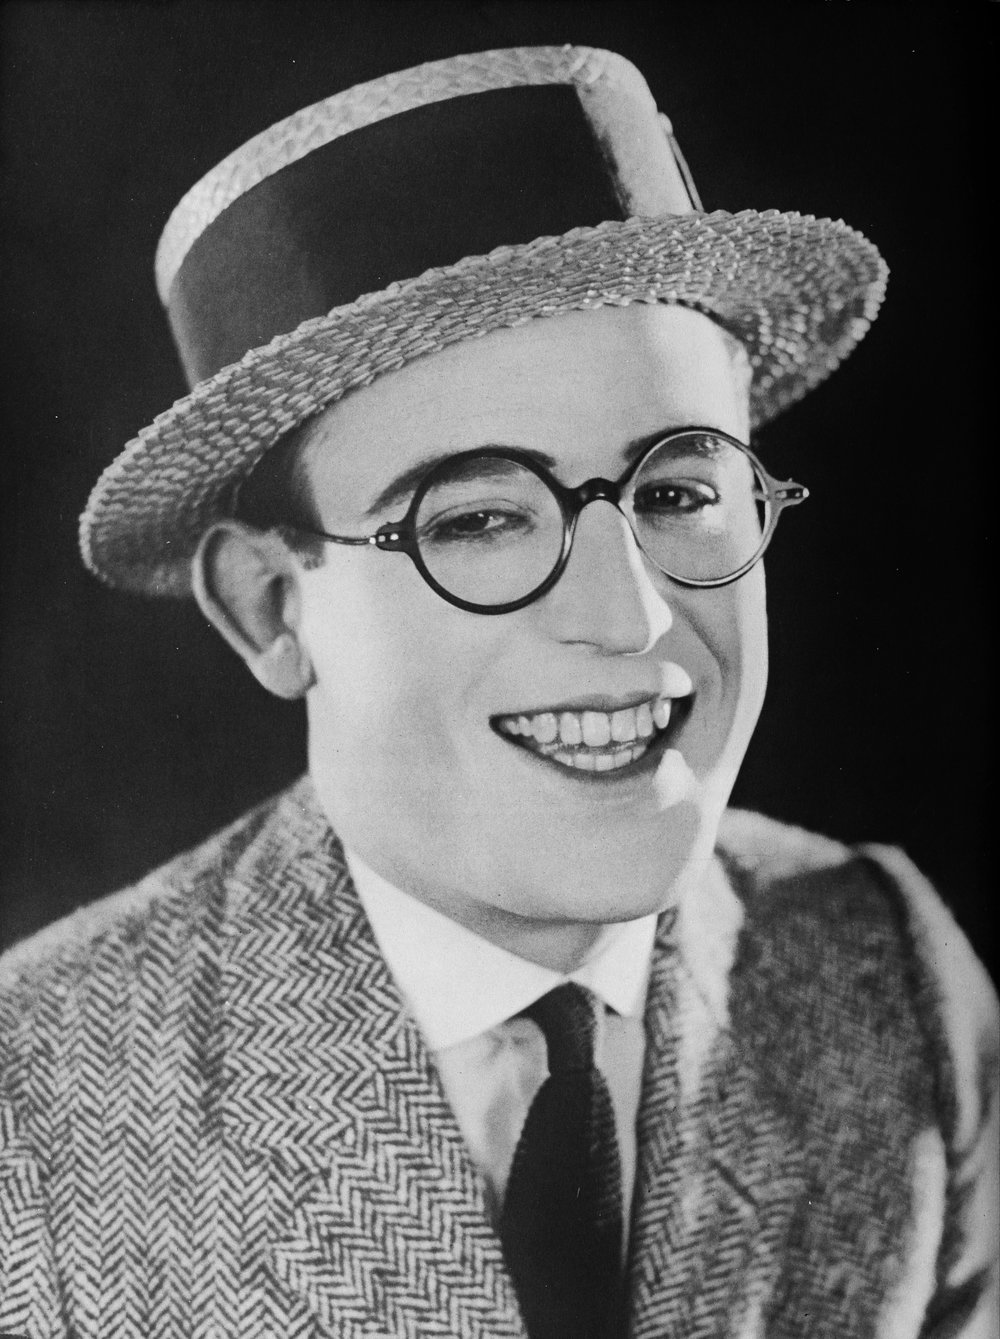 Harold_Lloyd_-_A_Pictorial_History_of_the_Silent_Screen.jpg